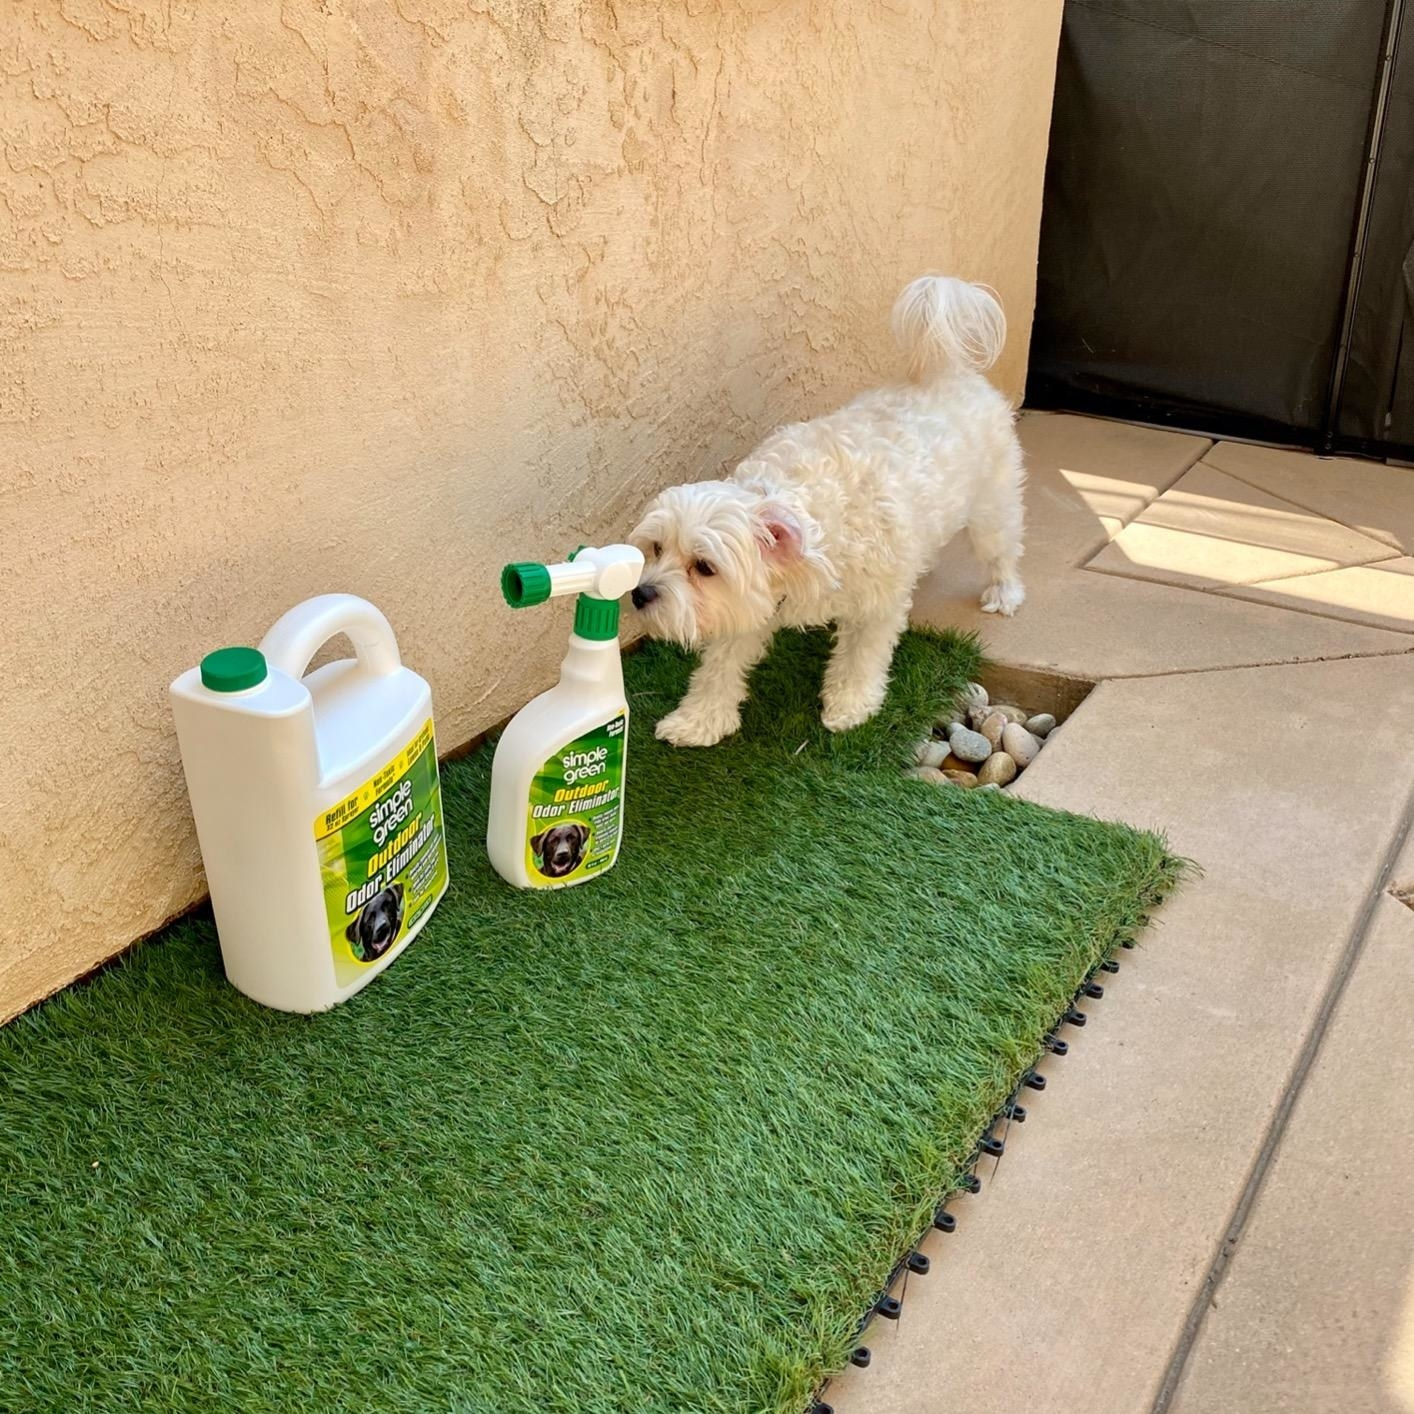 a dog and the odor eliminator on a lawn